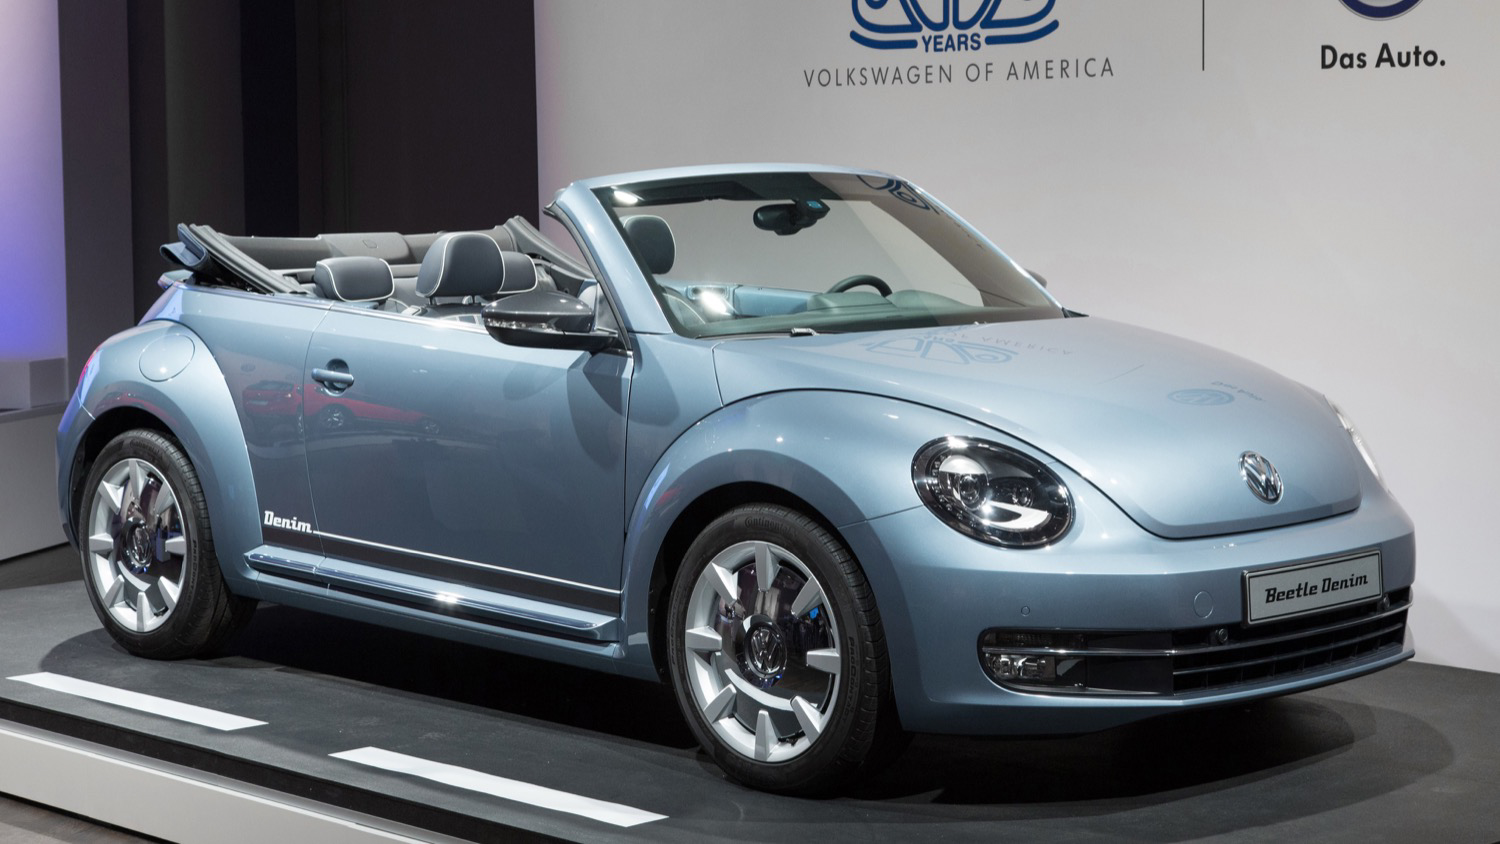 Volkswagen Introduces the 2016 Beetle Denim